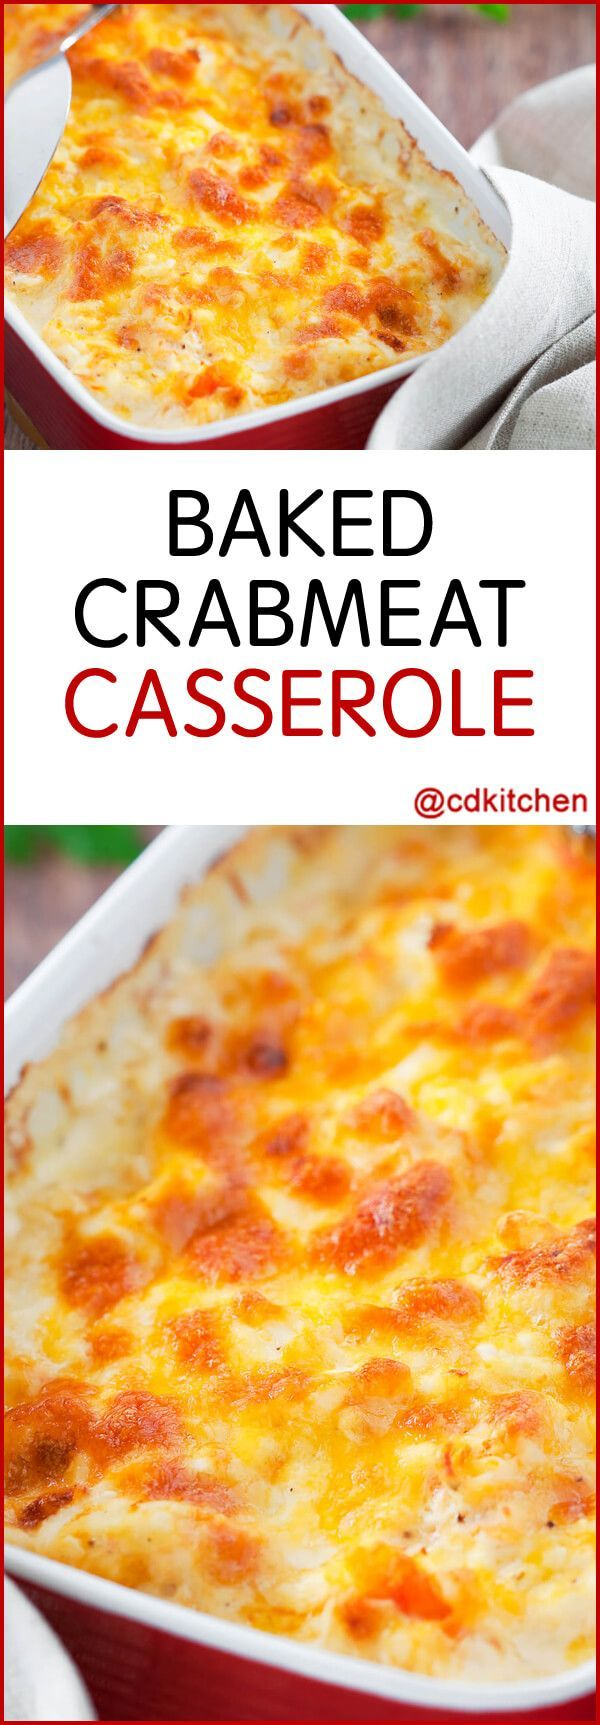 A light and fluffy casserole that brings out the crab flavor without overpowering it.   | CDKitchen.com